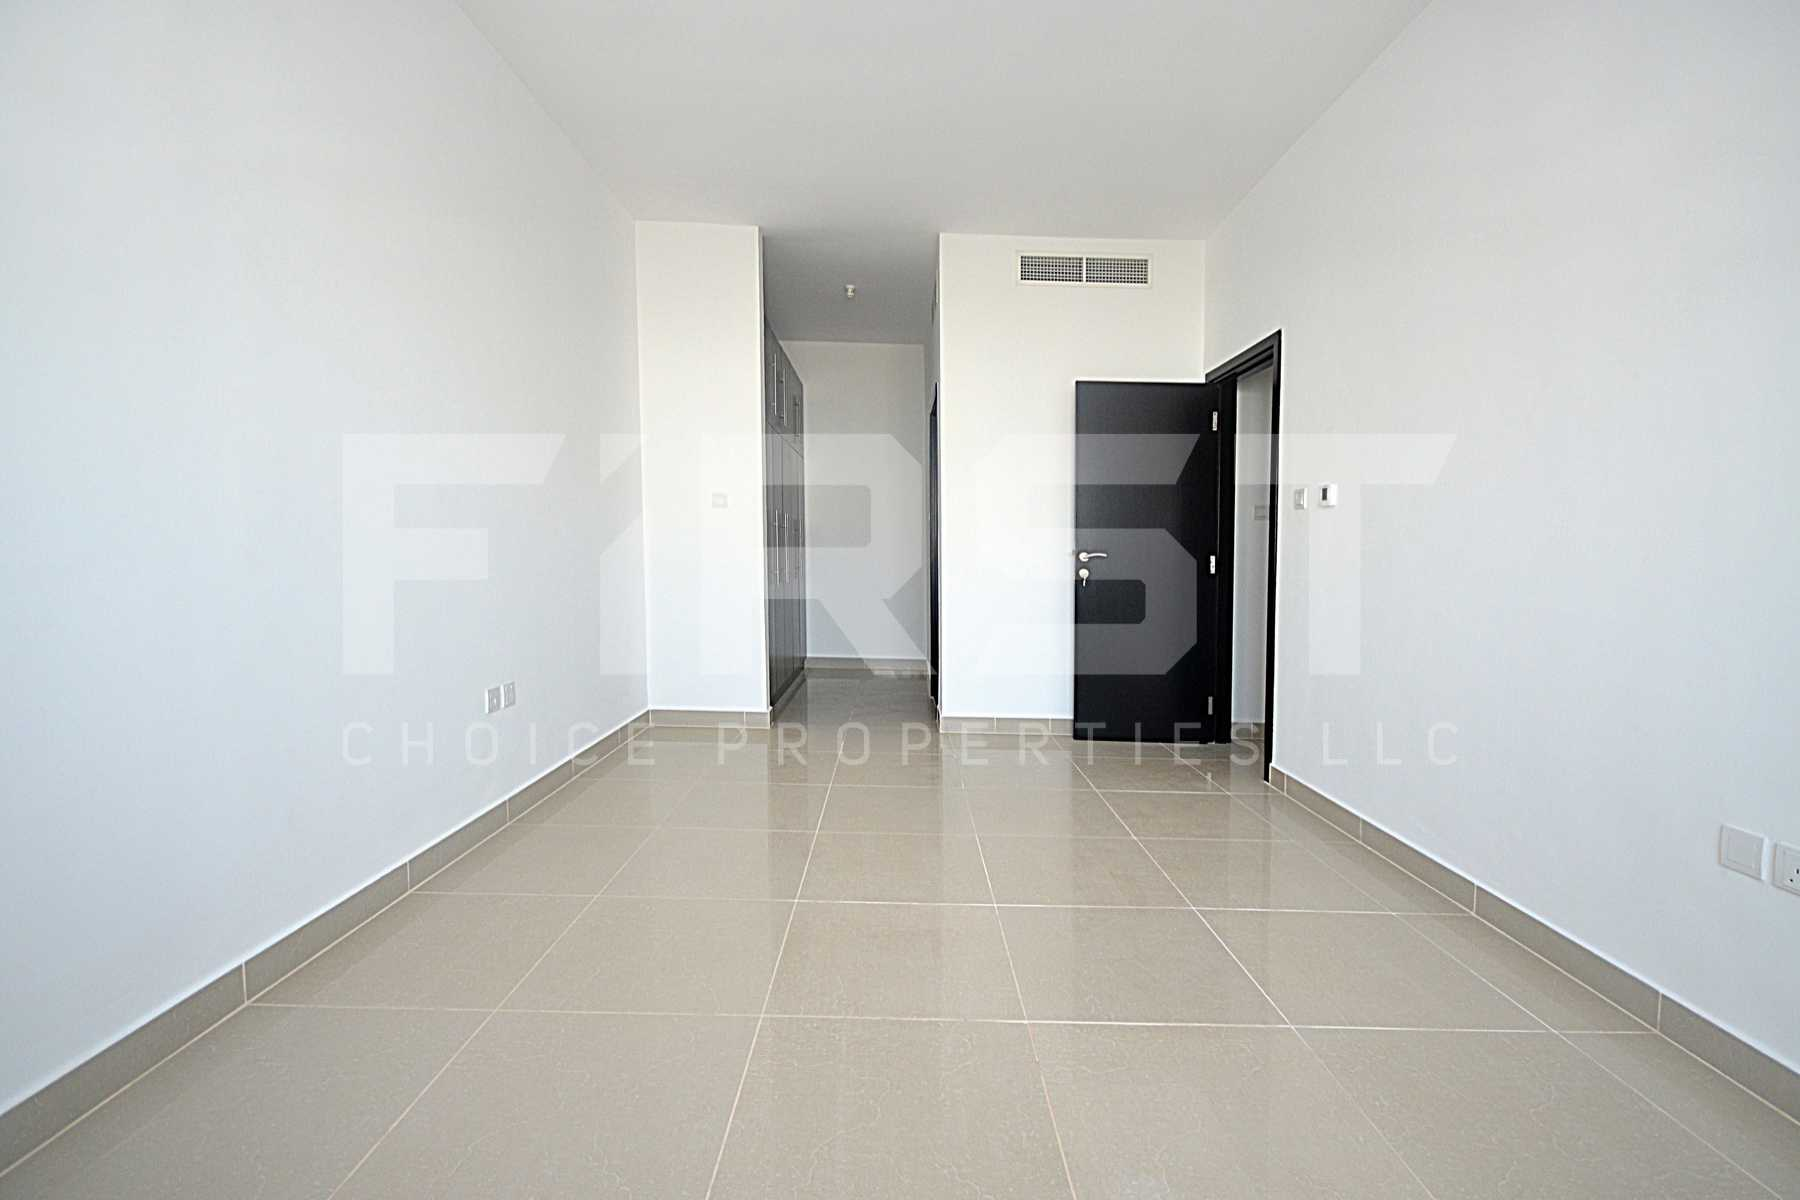 Internal Photo of 3 Bedroom Apartment Closed Kitchen in Al Reef Downtown Al Reef Abu Dhabi UAE (16).jpg